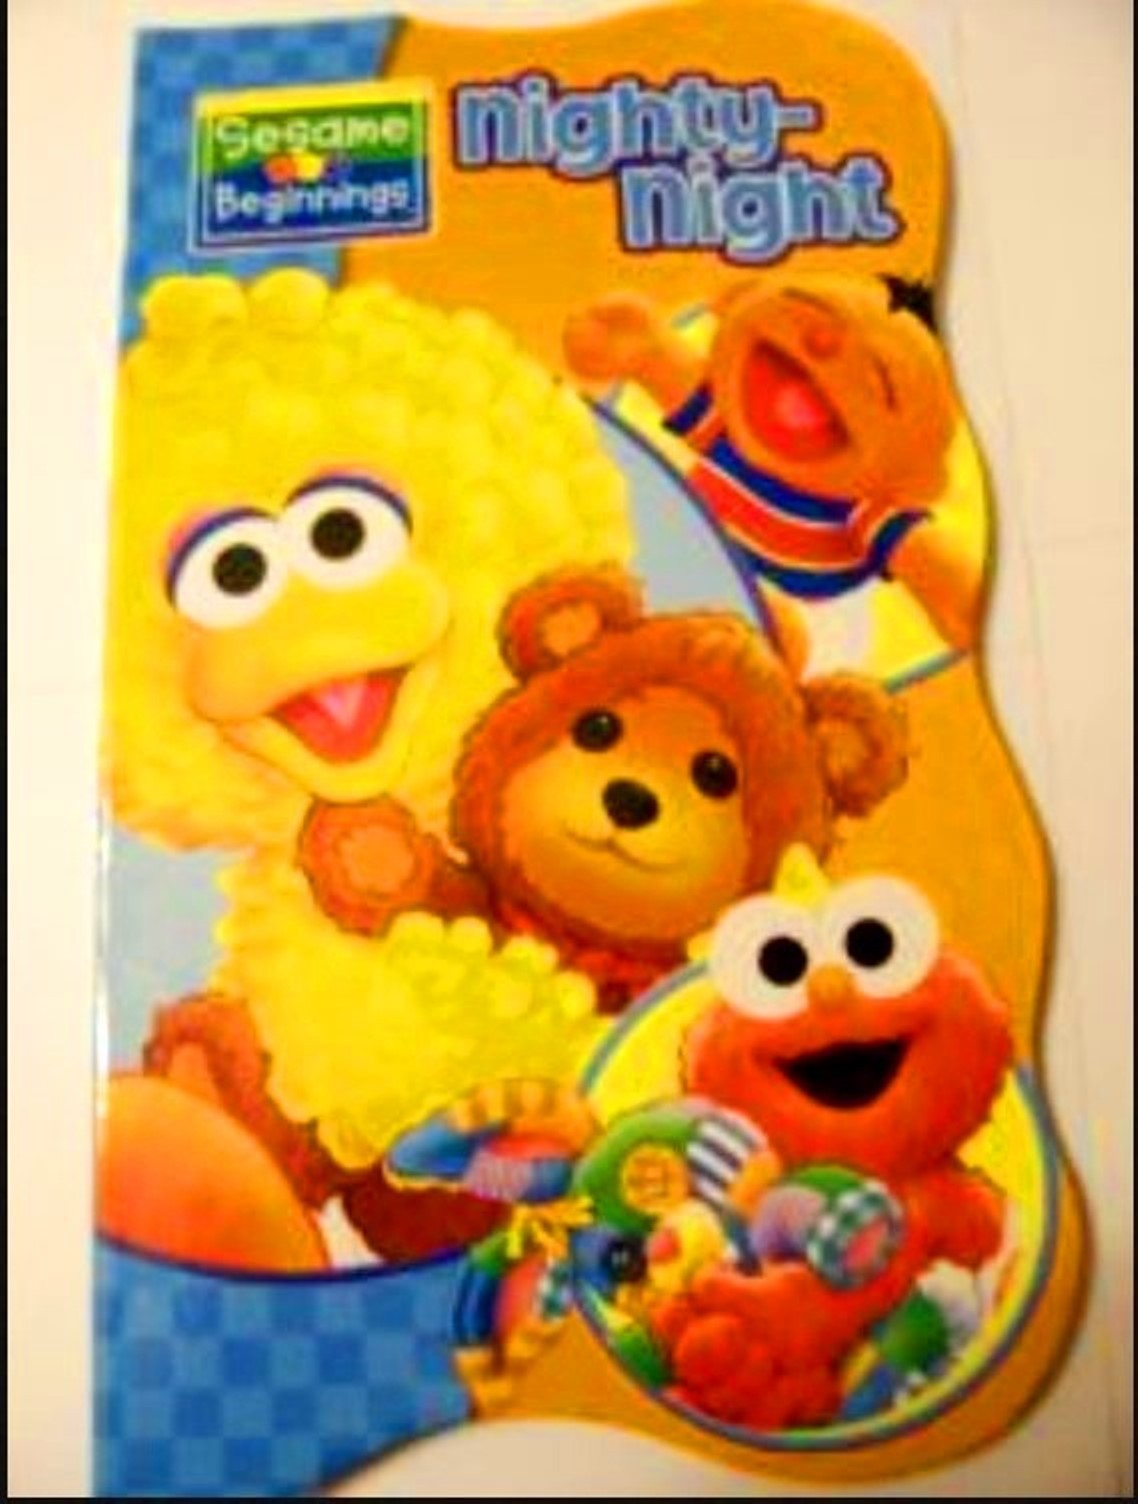 Sesame street nighty night book